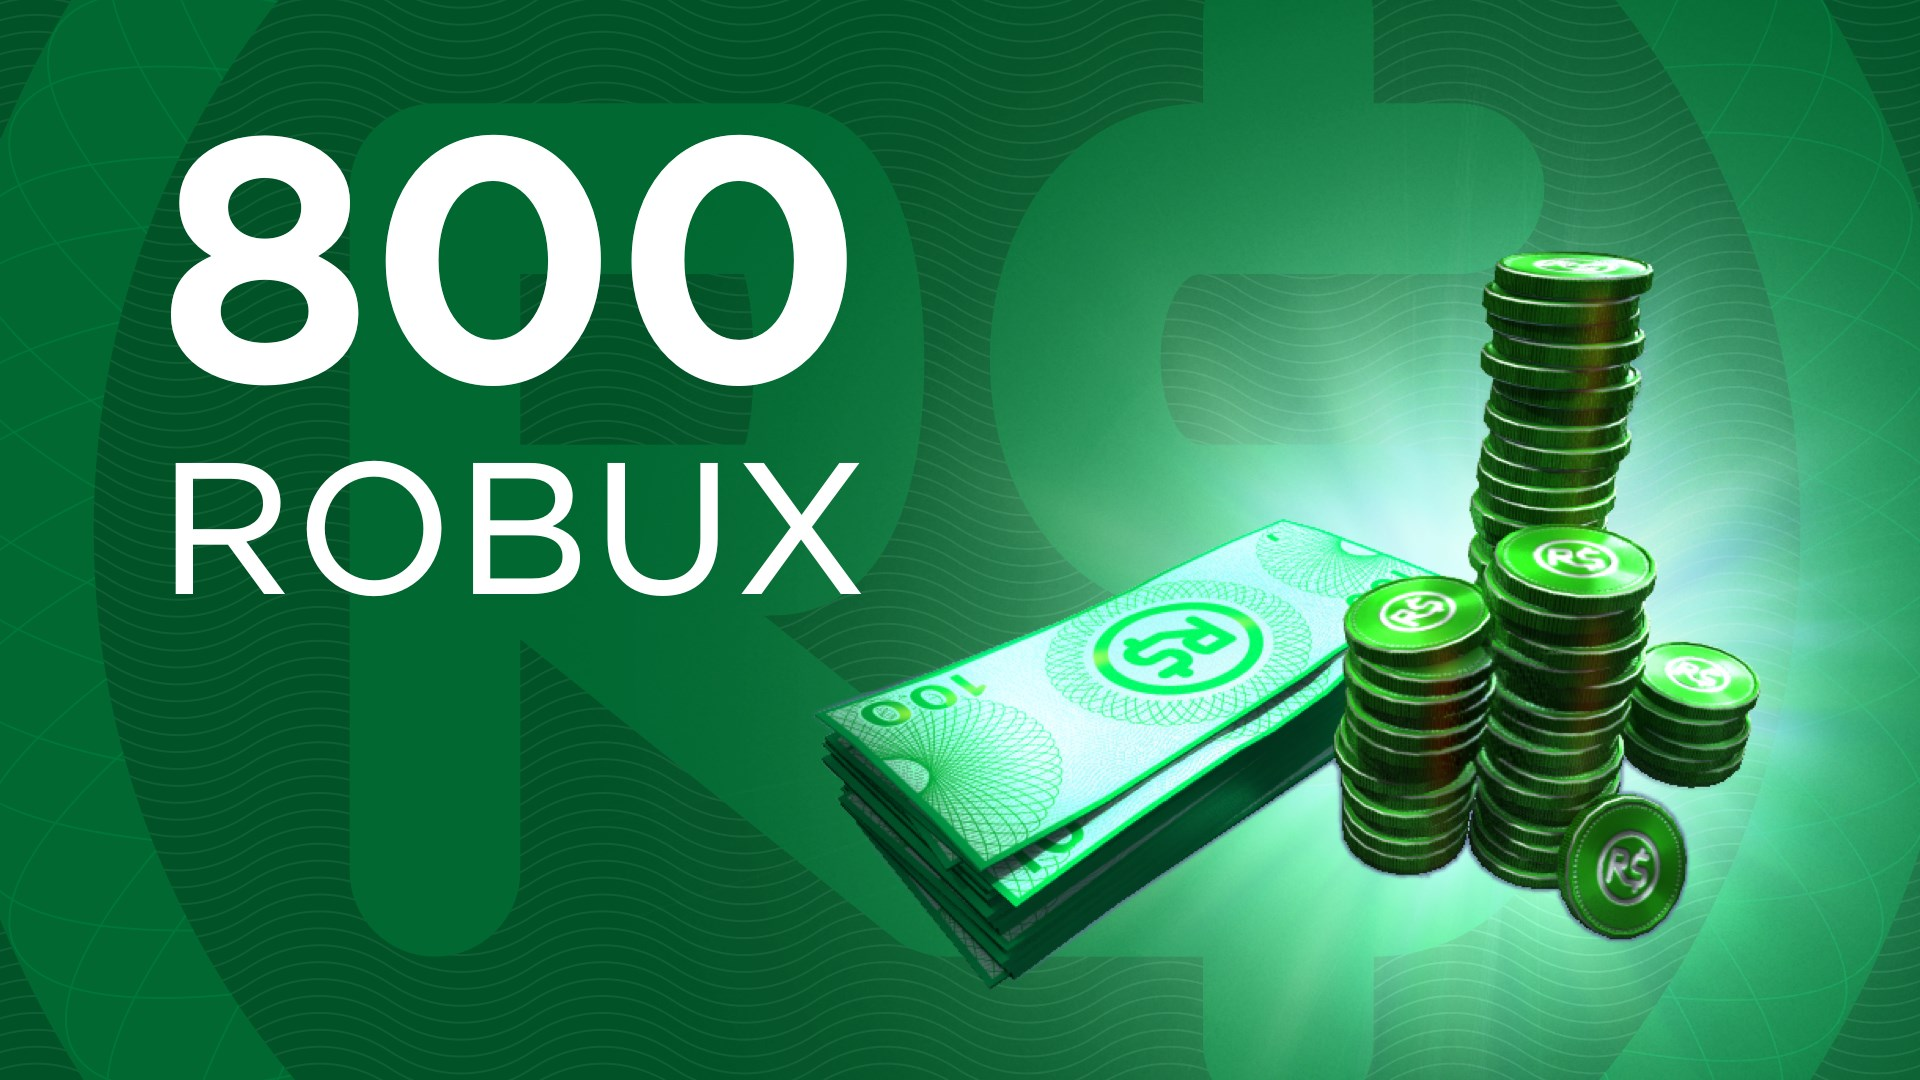 800 Robux for Xbox